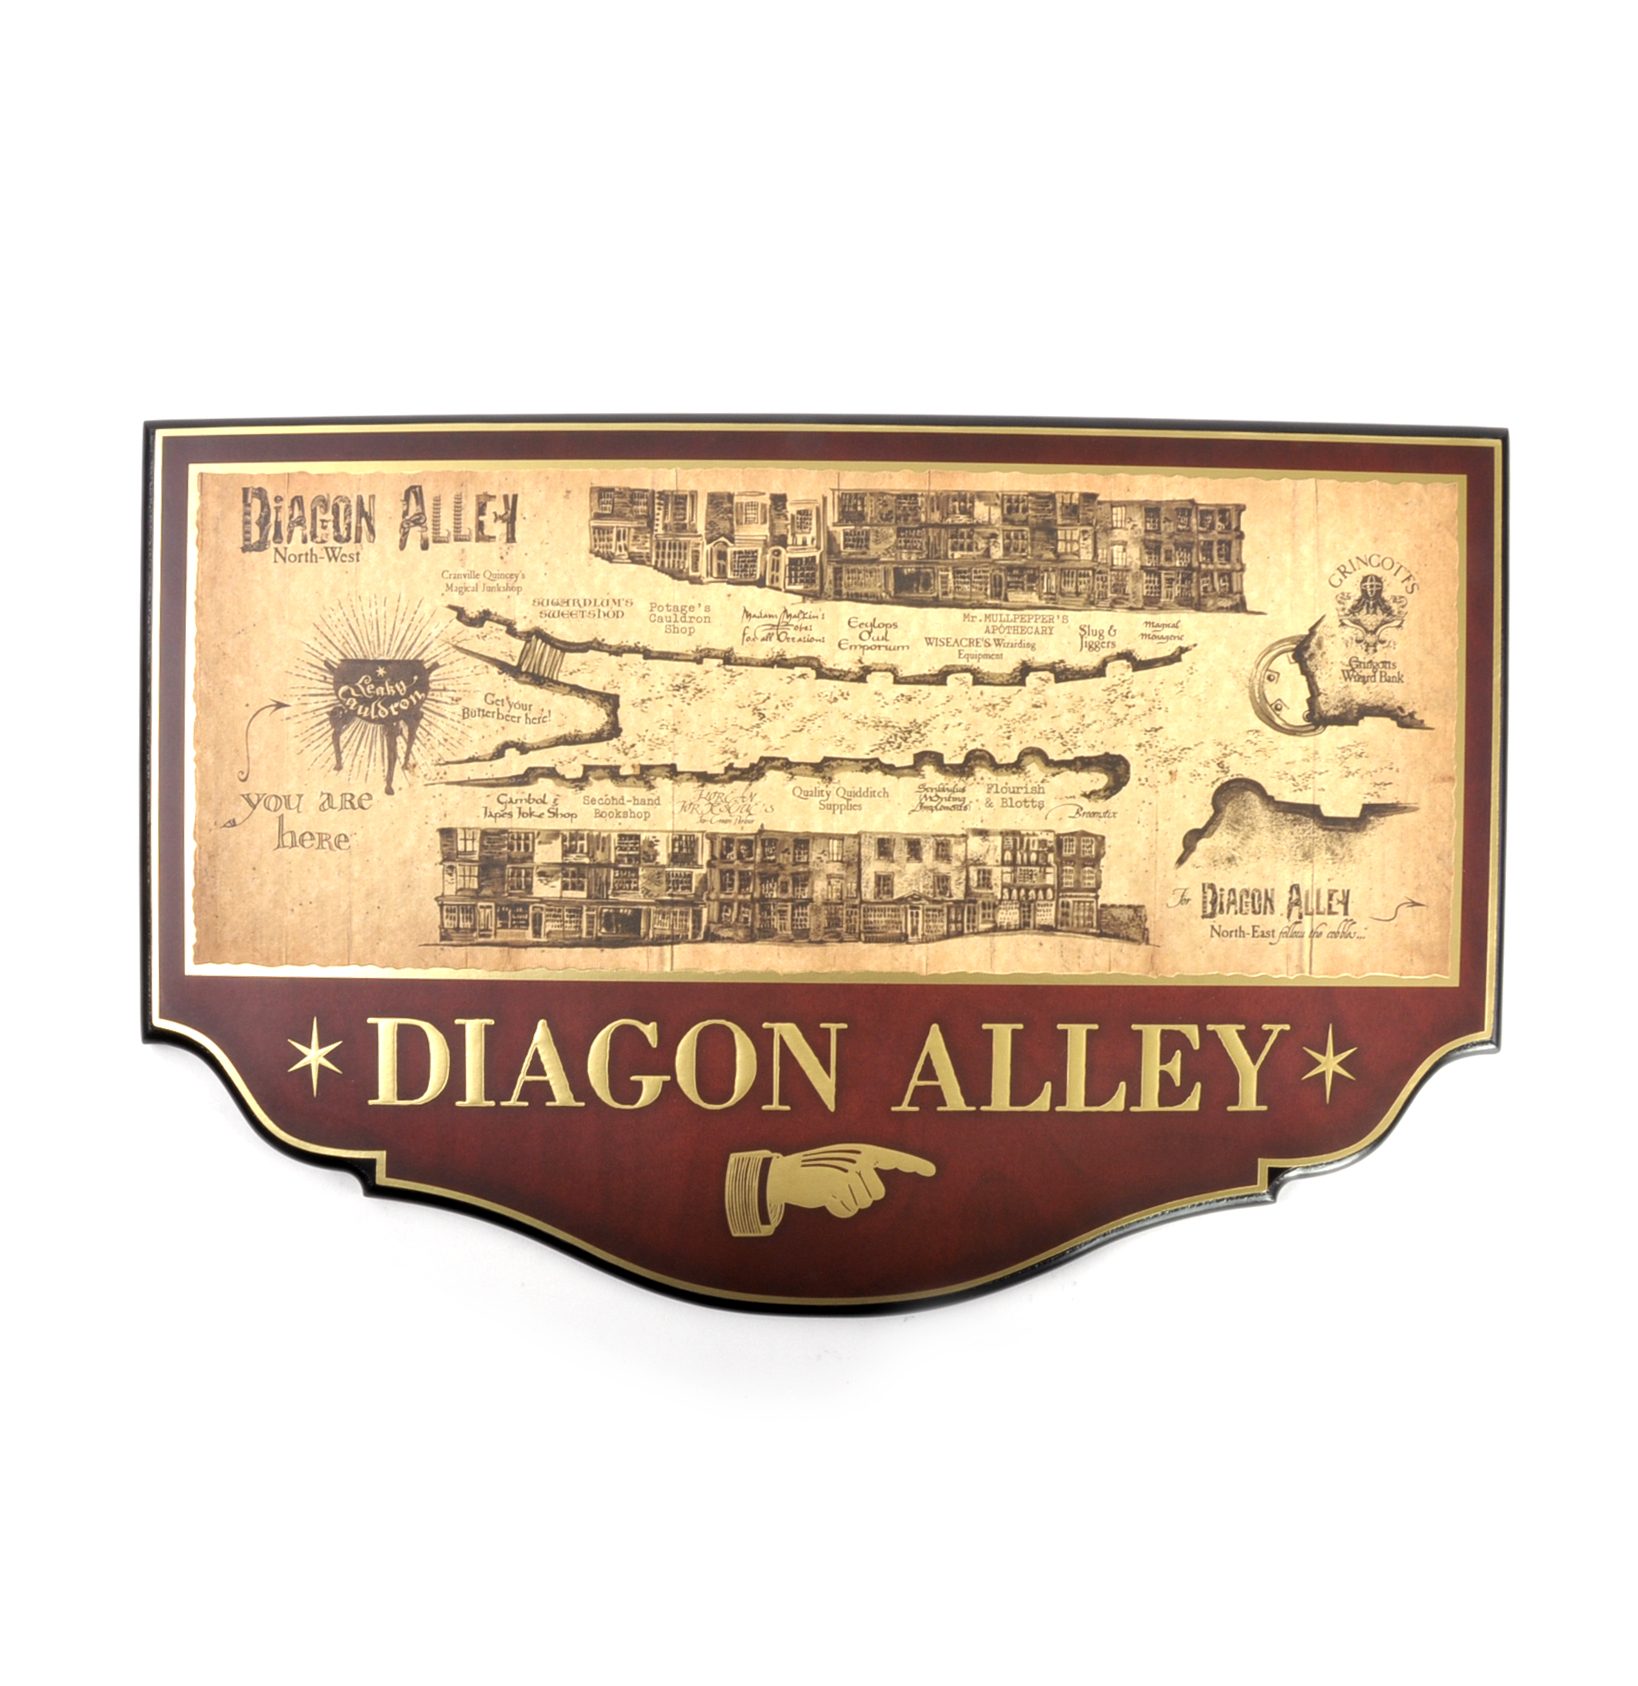 Diagon Alley Map Sign - Harry Potter Replica by Noble Collection on iowa county map, j.k. rowling map, ministry of magic map, wizard map, harry potter alley map, charing cross galloway street map, oklahoma tornado alley map, chamber of secrets map, hogwarts map, home map,